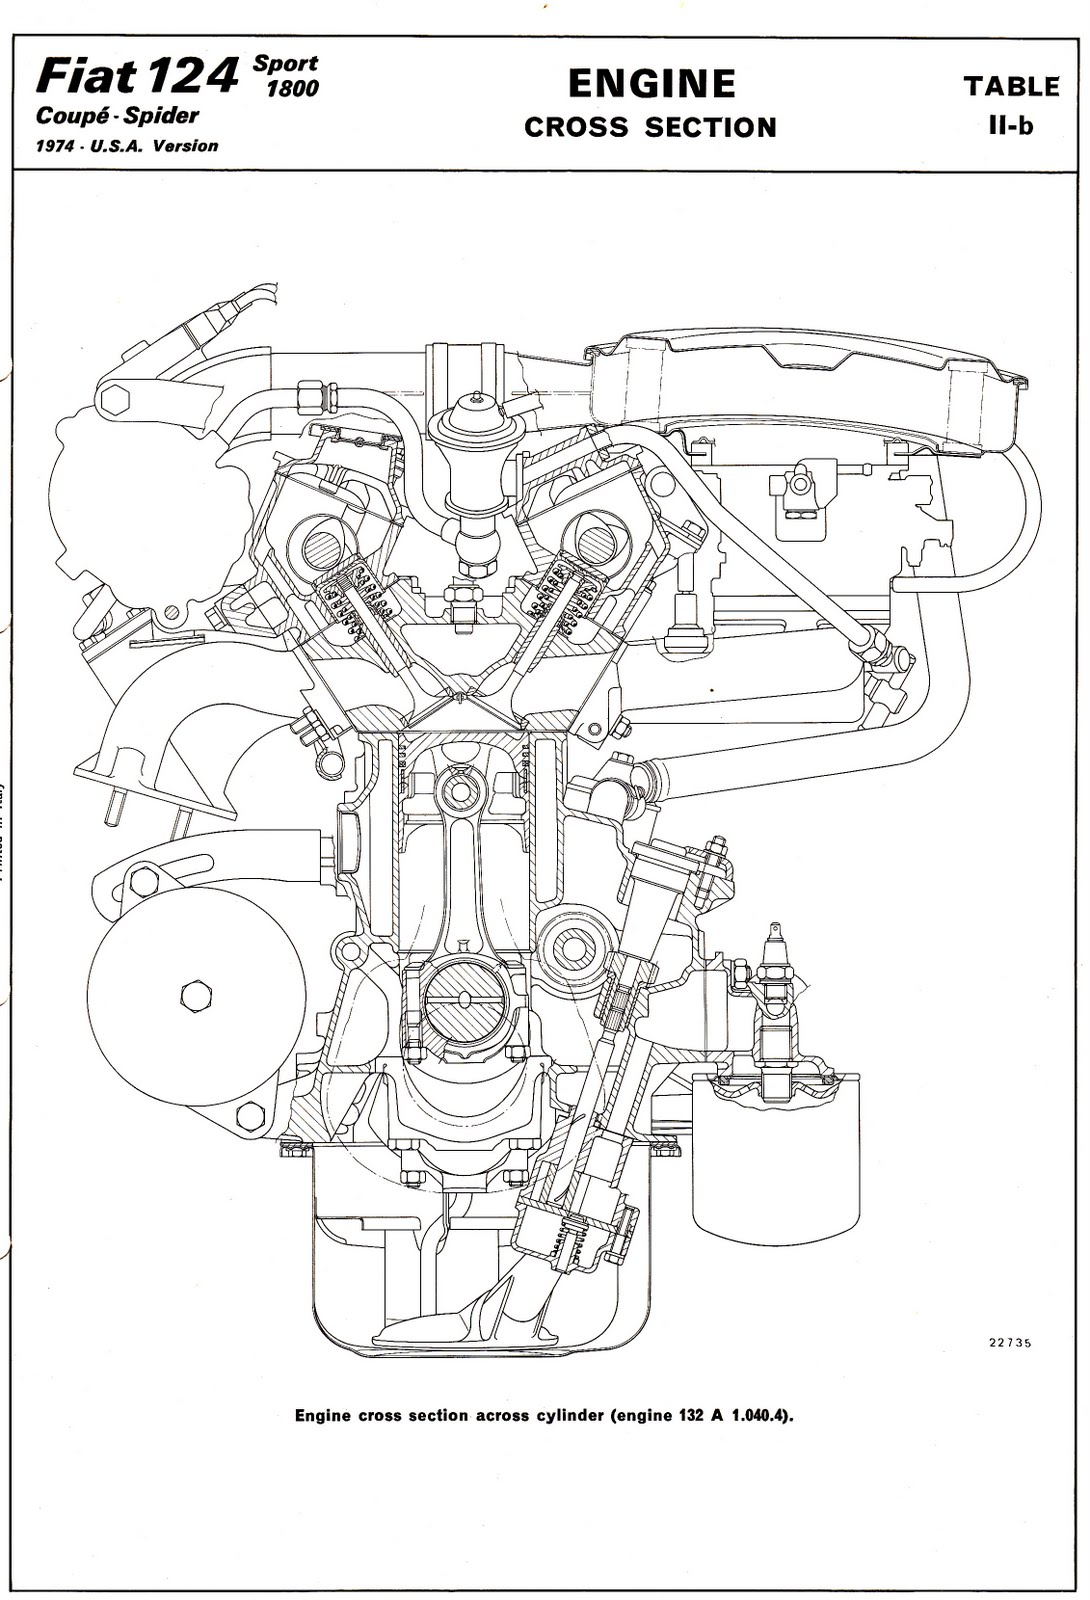 Fiat 124 Abarth Rally Group 4 1973 Racing Cars Rear Axle Schematic Engine